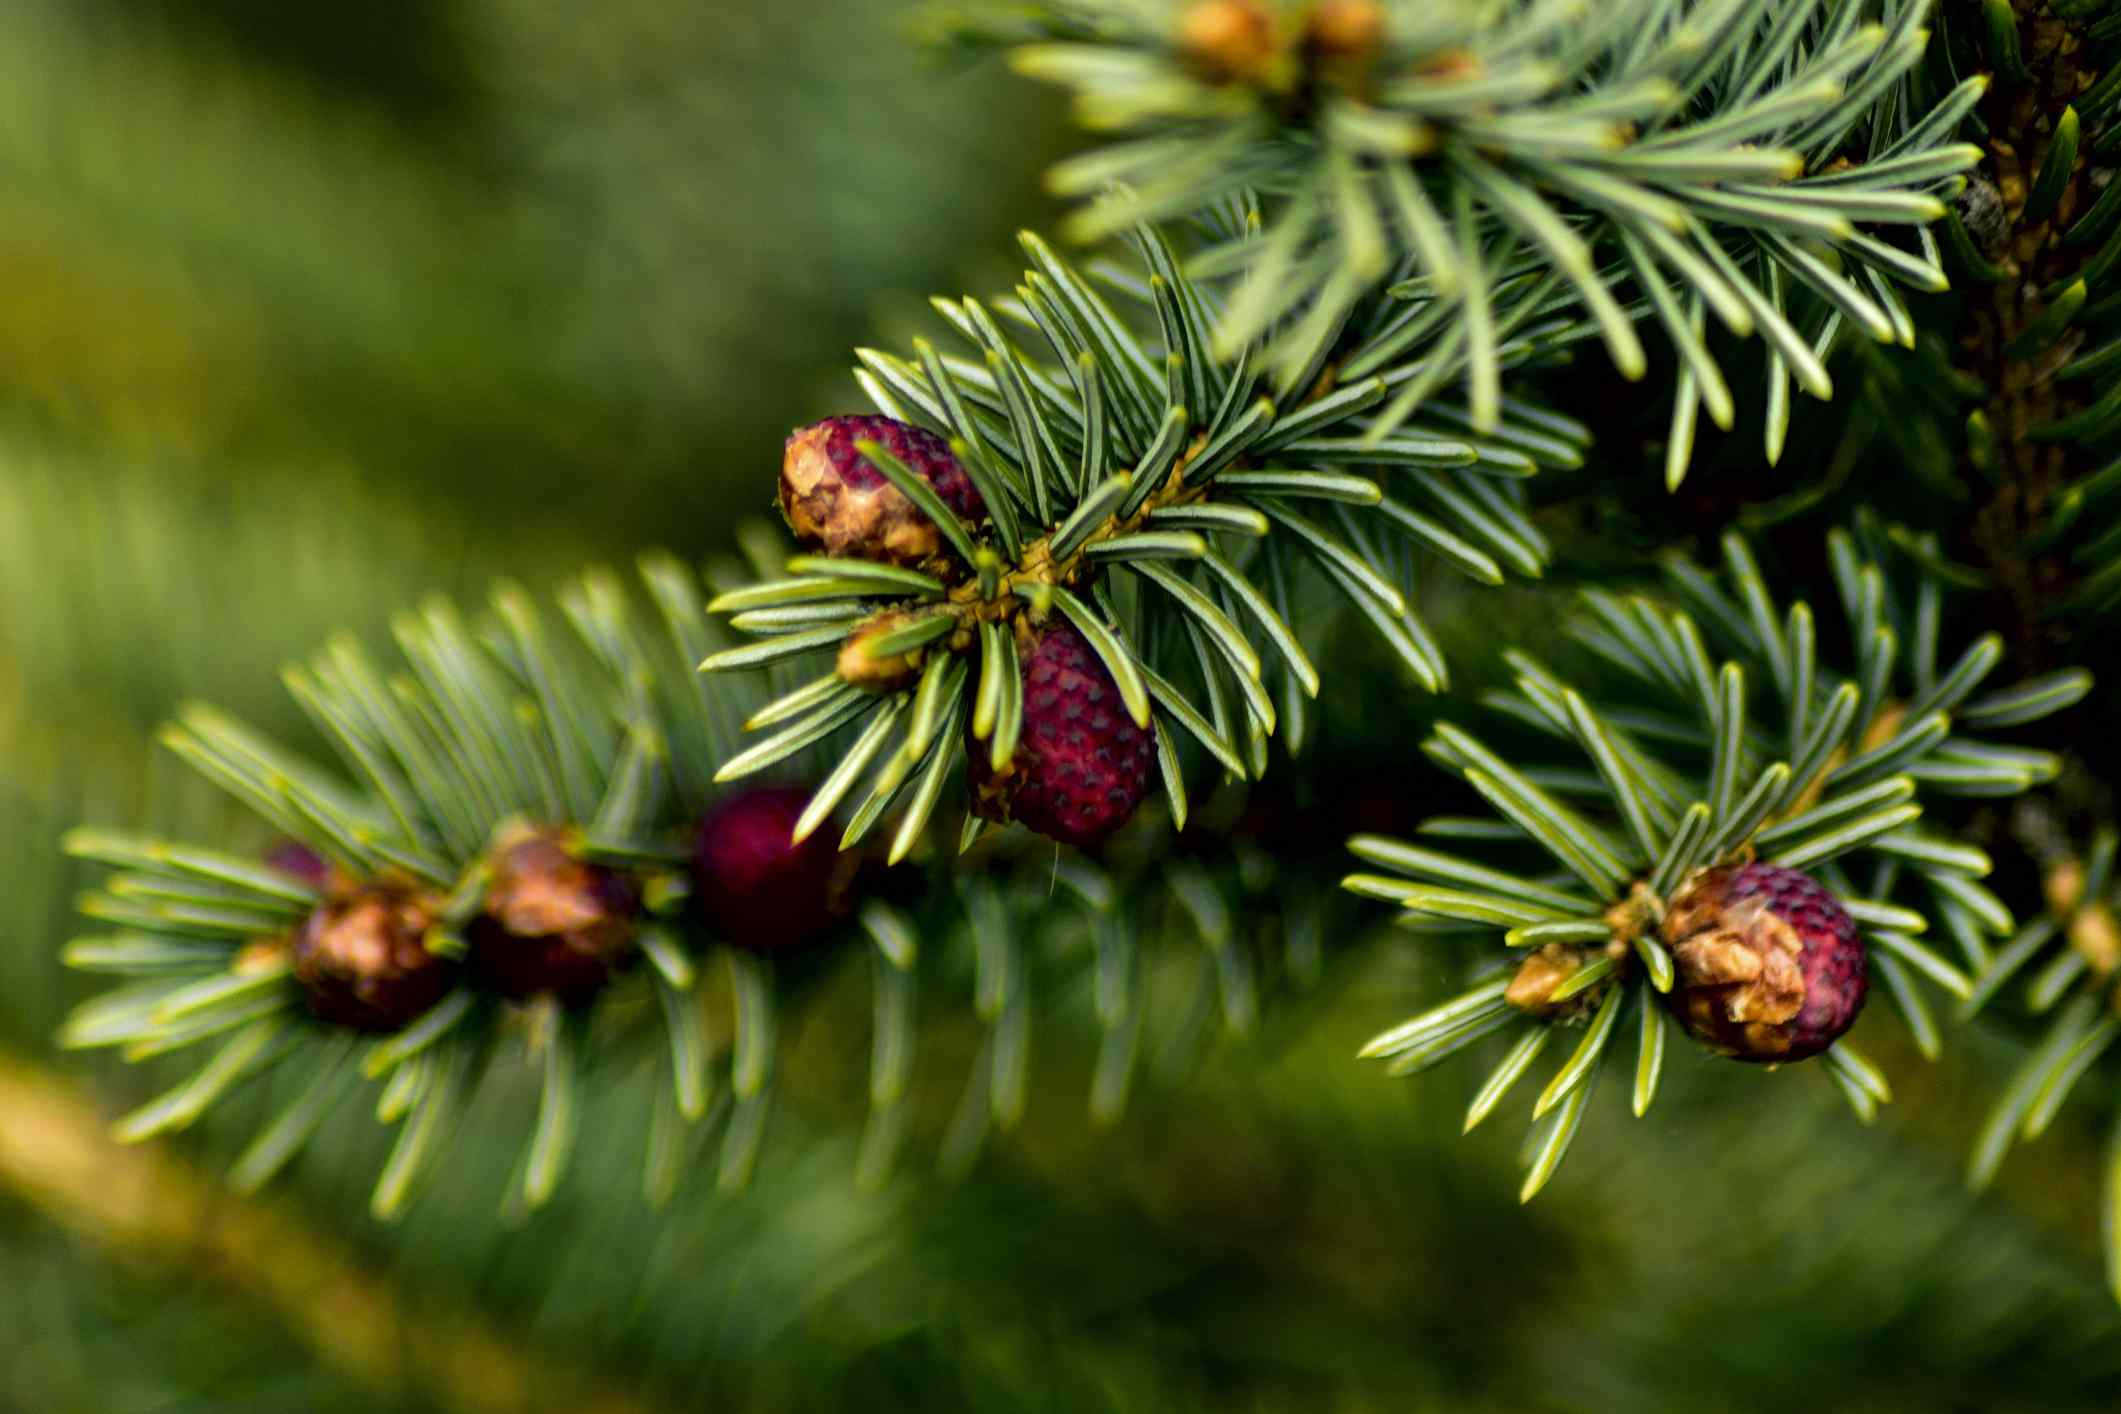 Detailed shot of blunt needles of Red Fir tree in the spring.